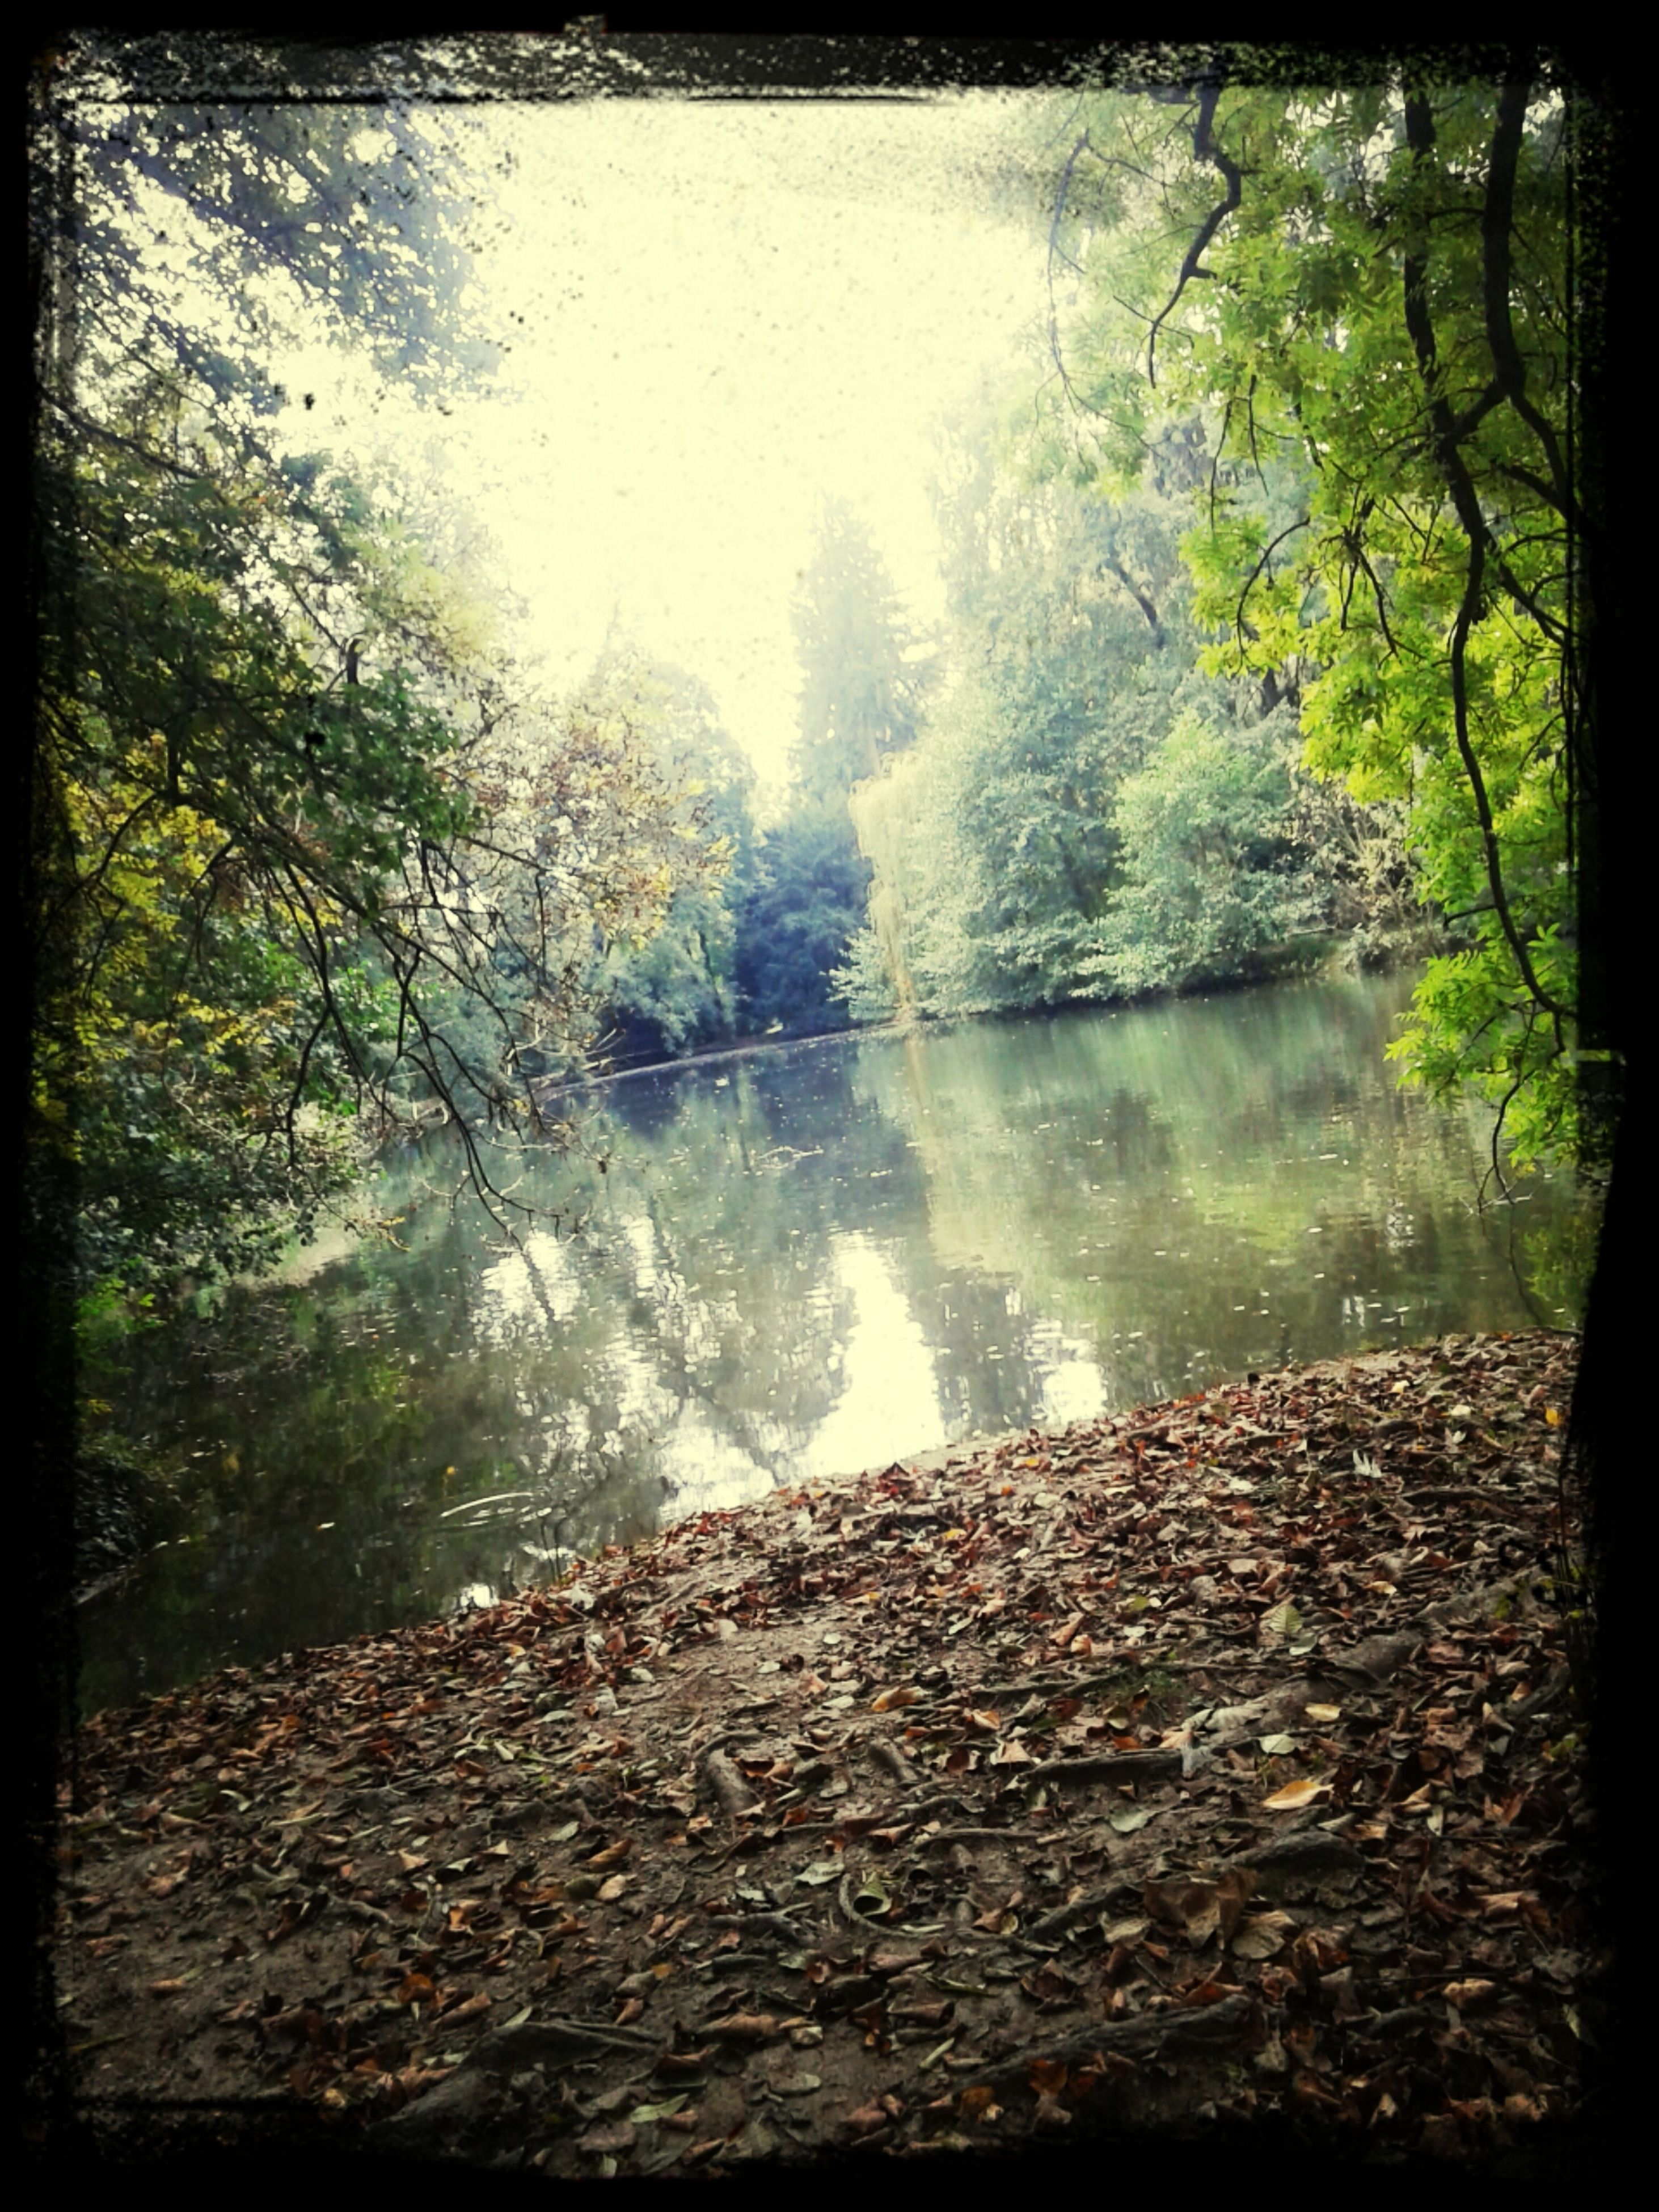 water, transfer print, tree, tranquility, auto post production filter, tranquil scene, reflection, lake, scenics, nature, beauty in nature, river, stream, forest, day, non-urban scene, outdoors, idyllic, no people, rock - object